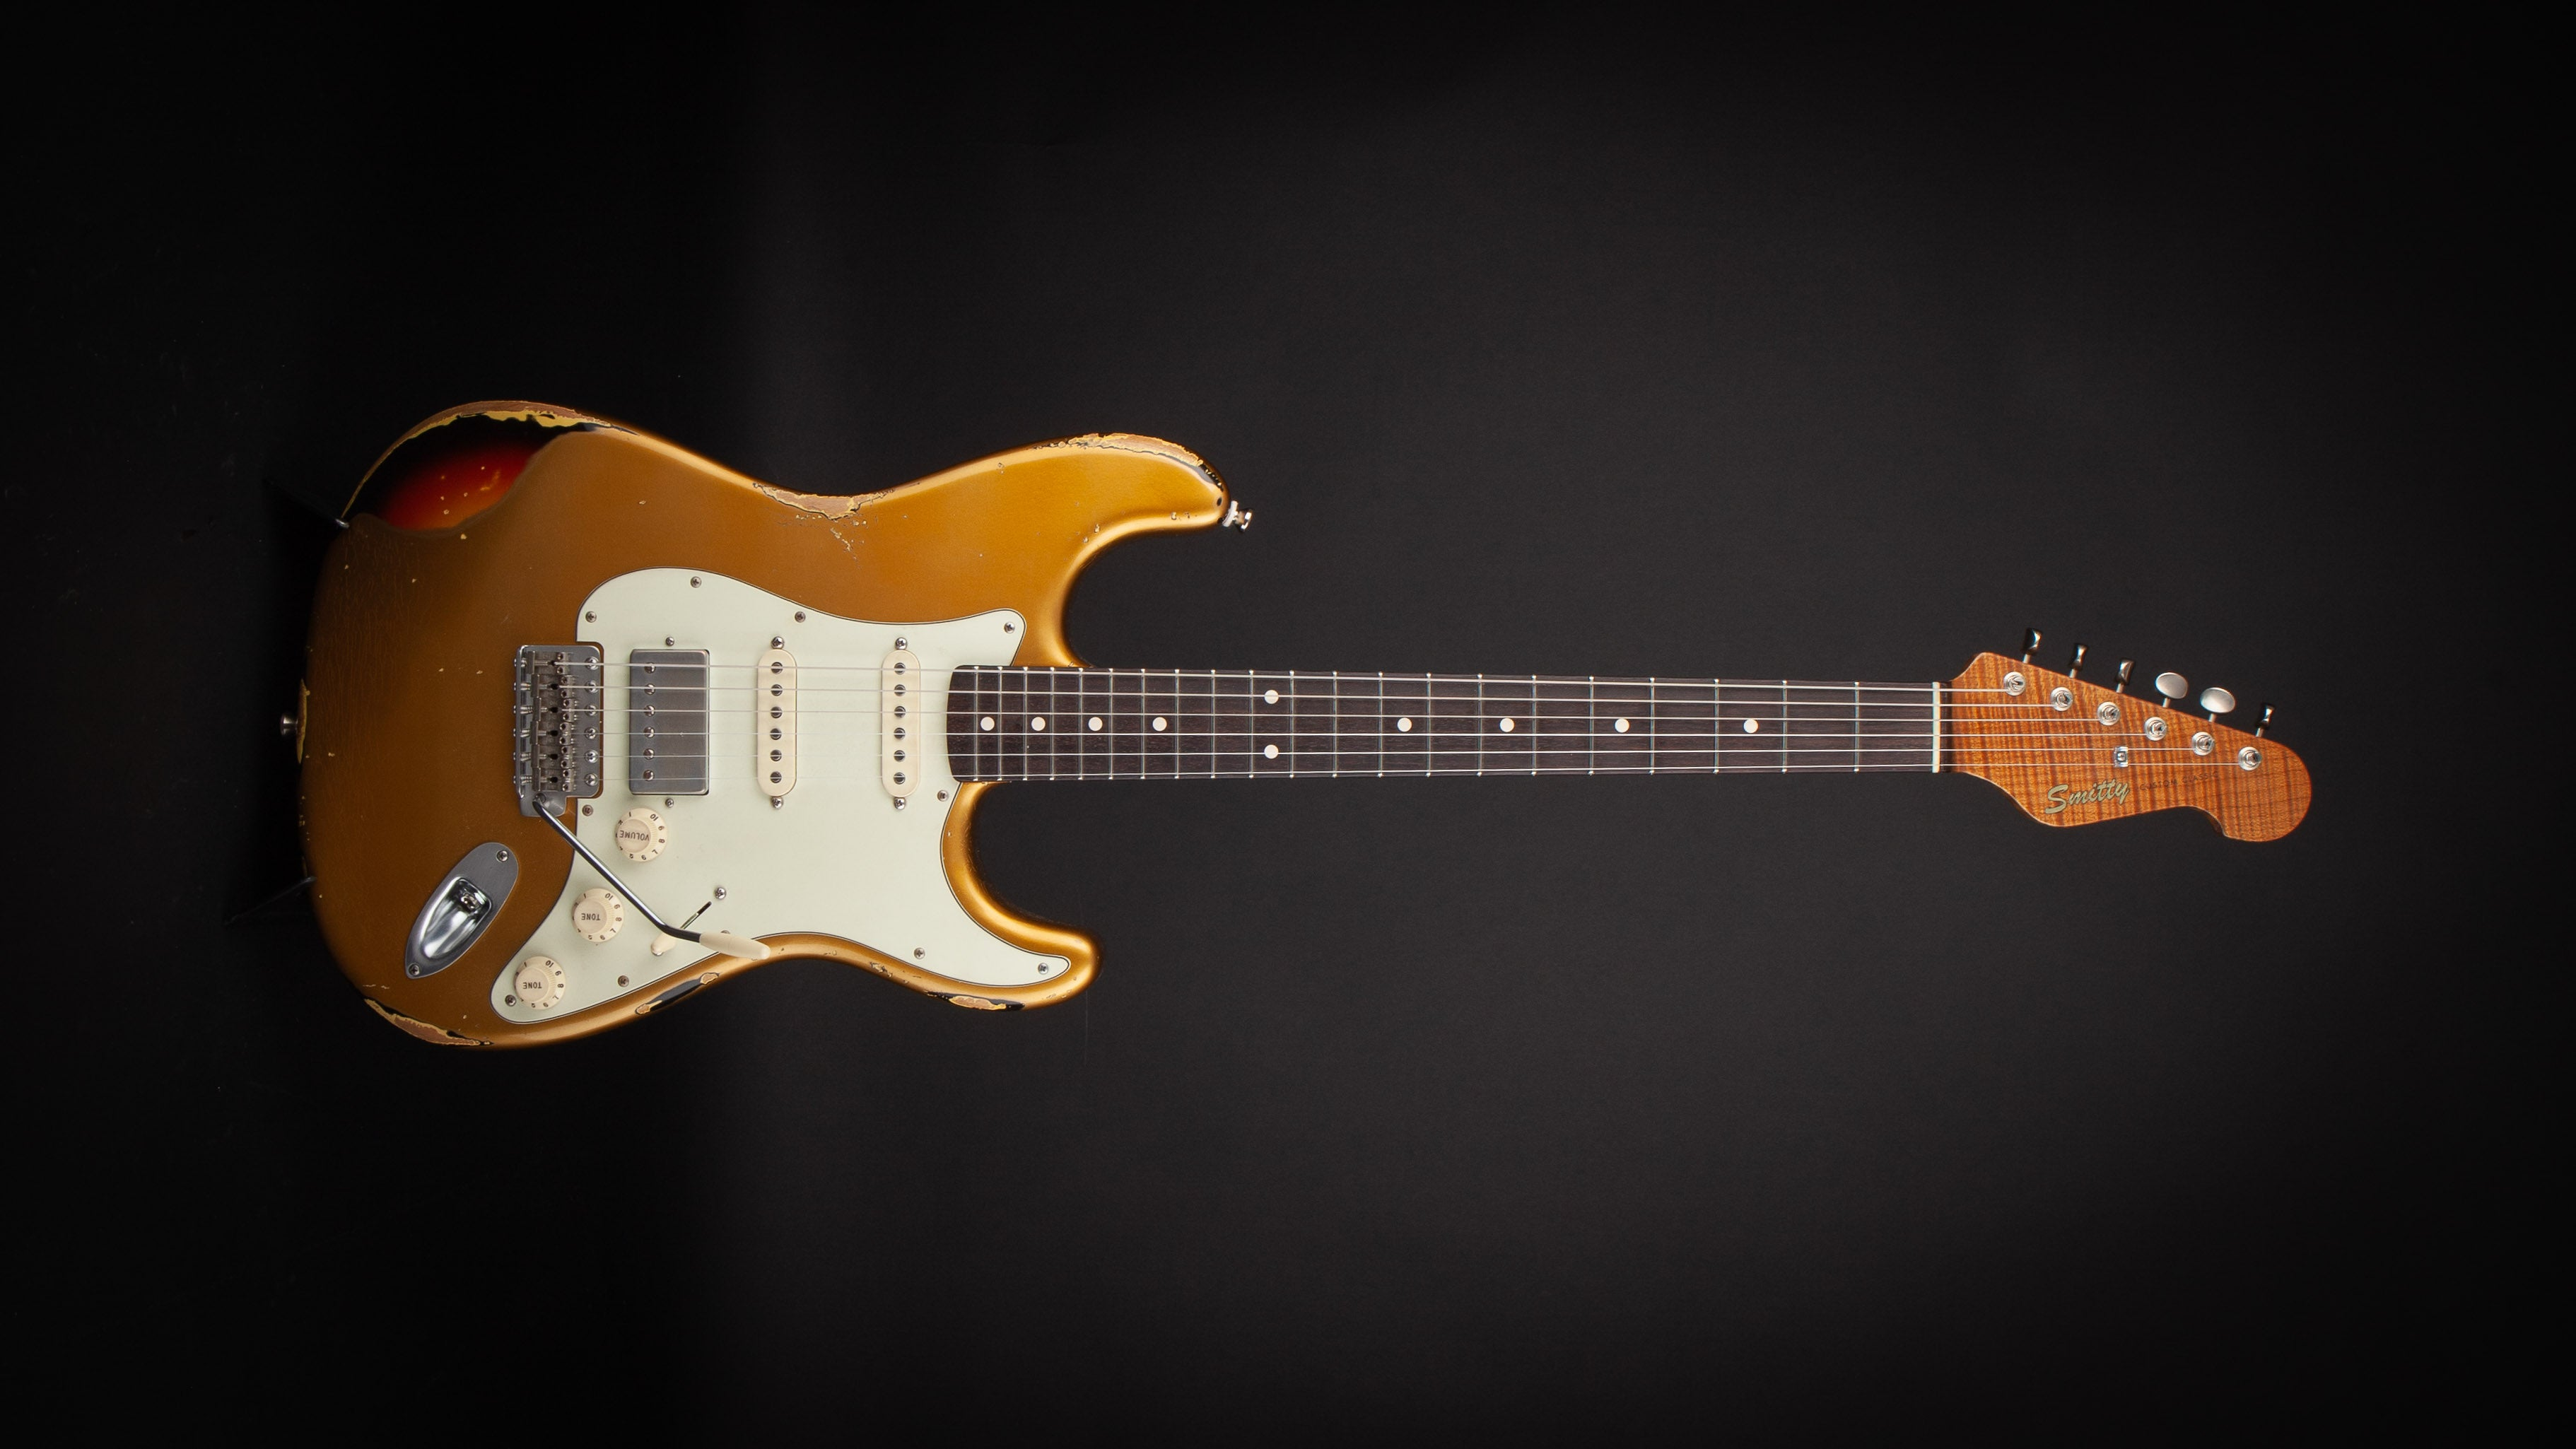 Smitty Guitars Classic S Gold over Sunburst